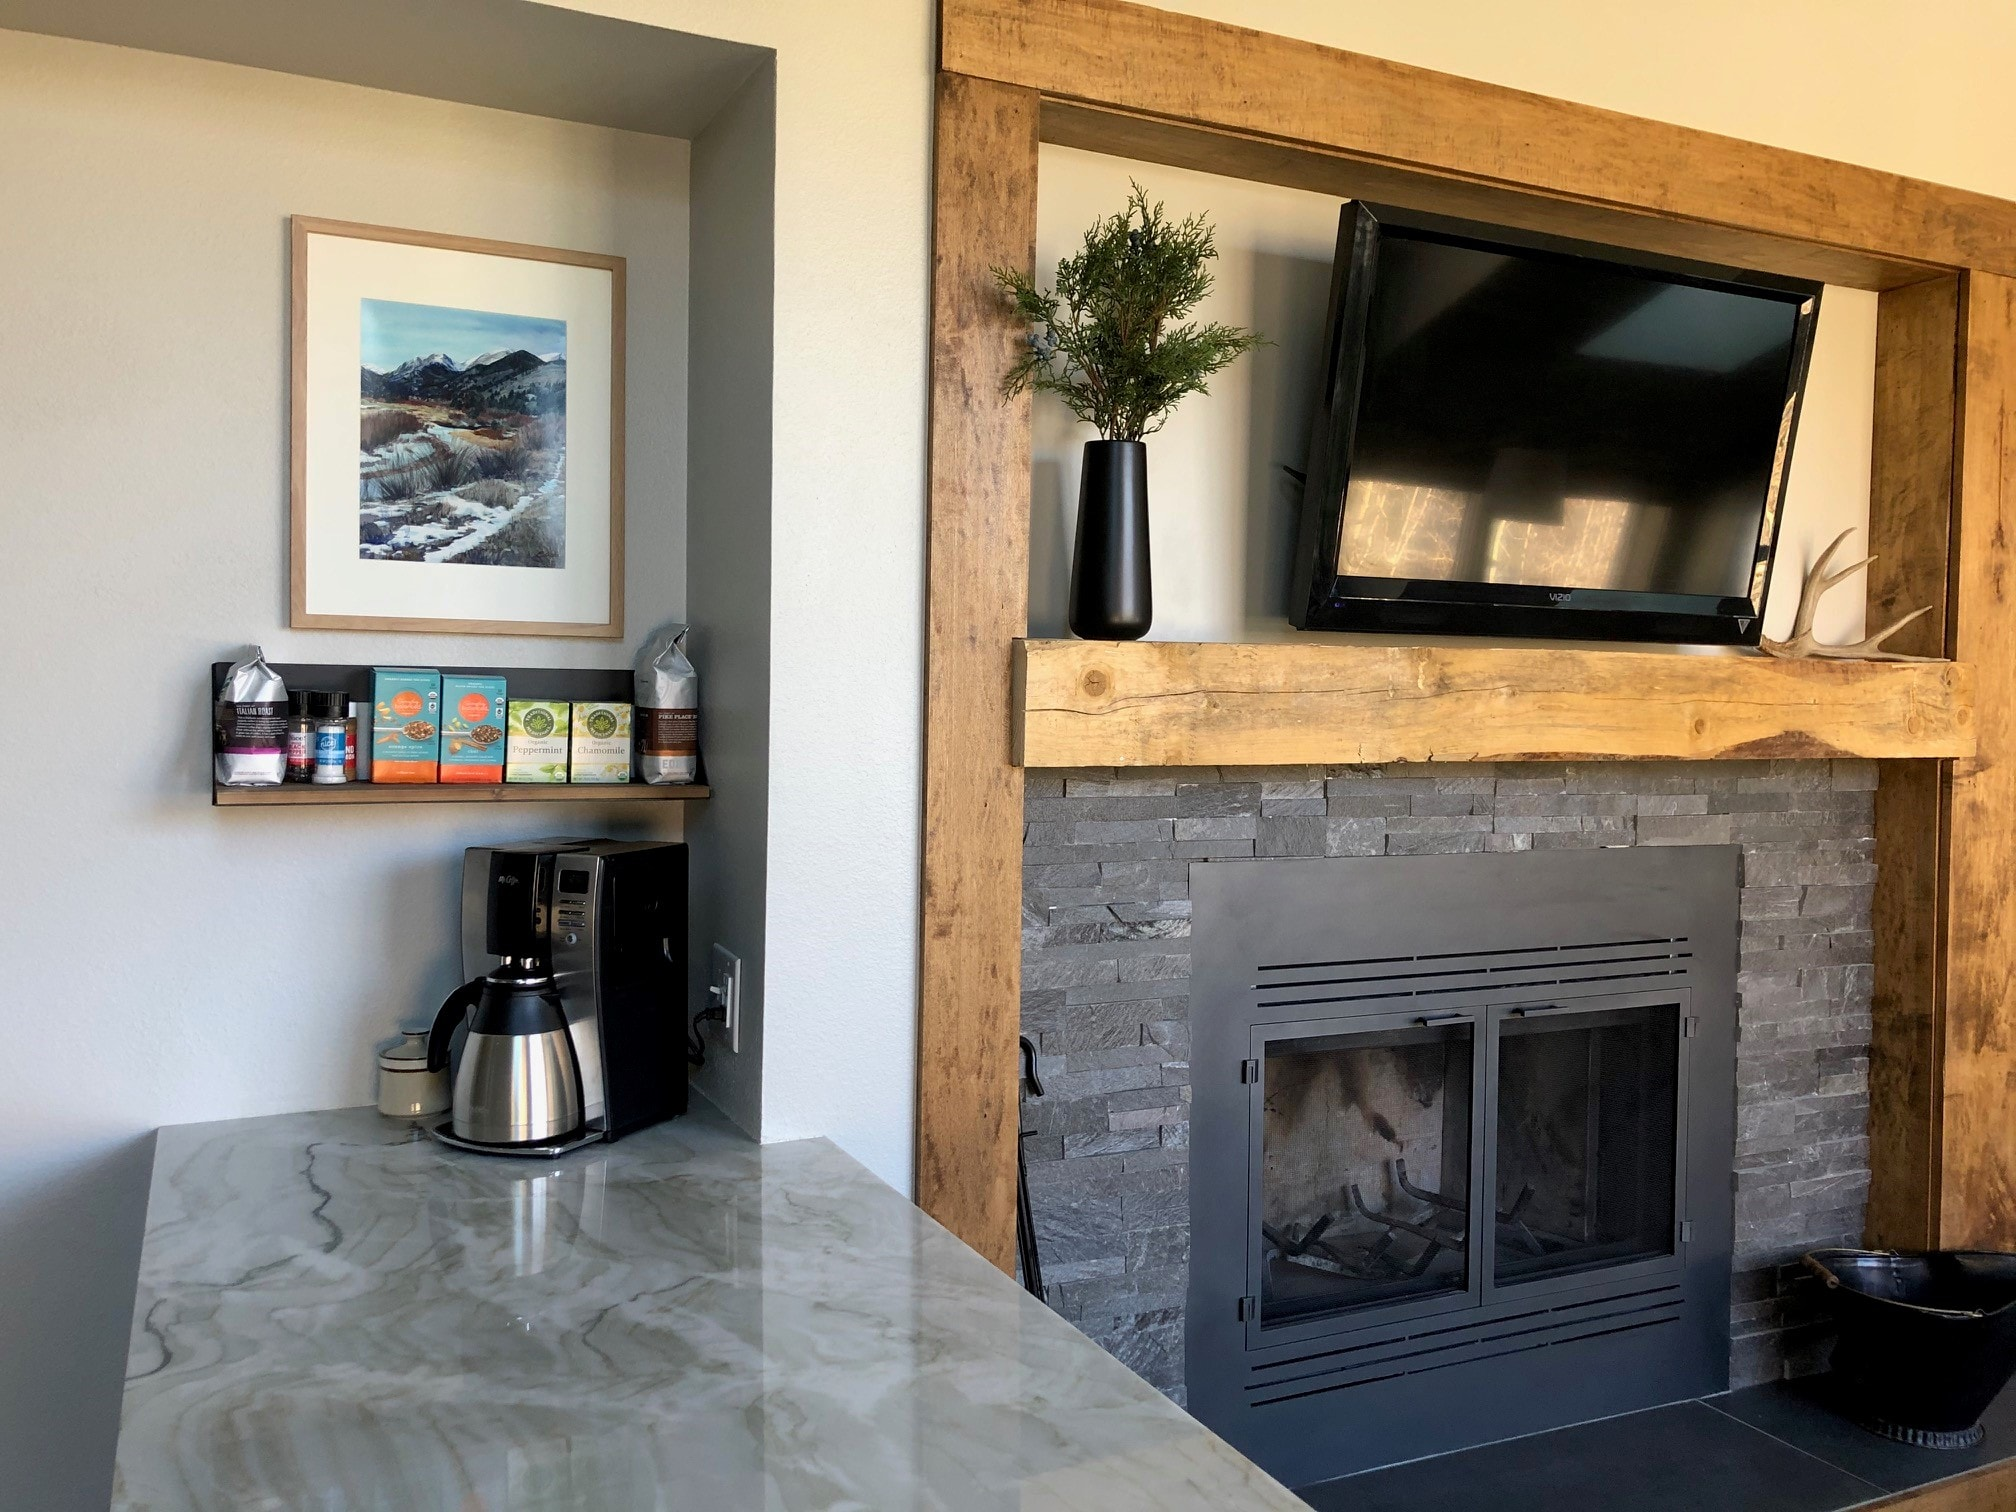 Norstone Charcoal Rock Panels surrounding fireplace with rough hewn wooden accents in Colorado mountain ski condo